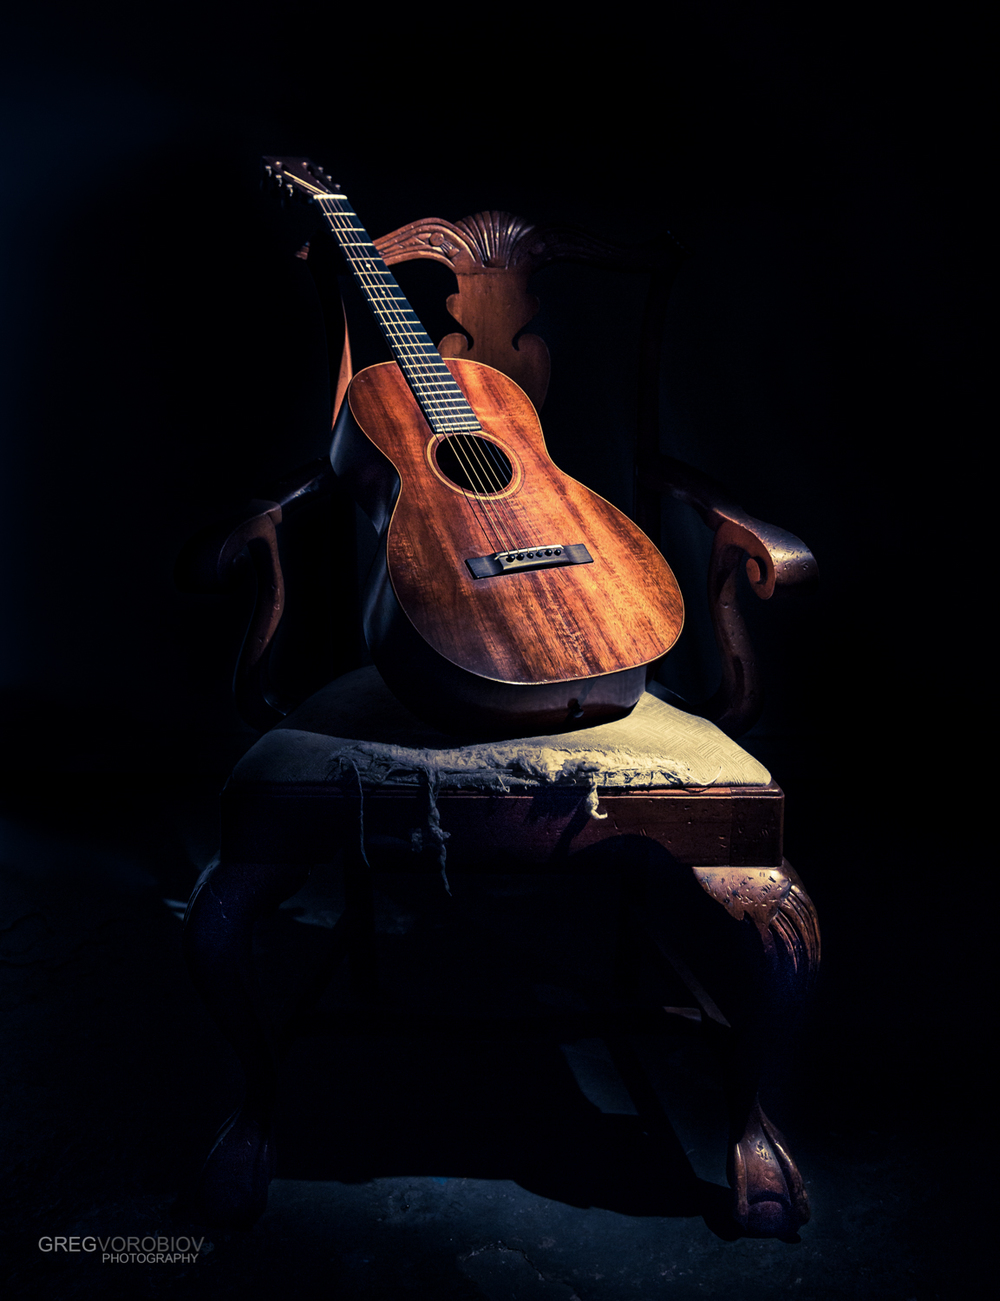 martin_koa_guitar_by_greg_vorobiov_1_NV8A0645-Edit-2.jpg